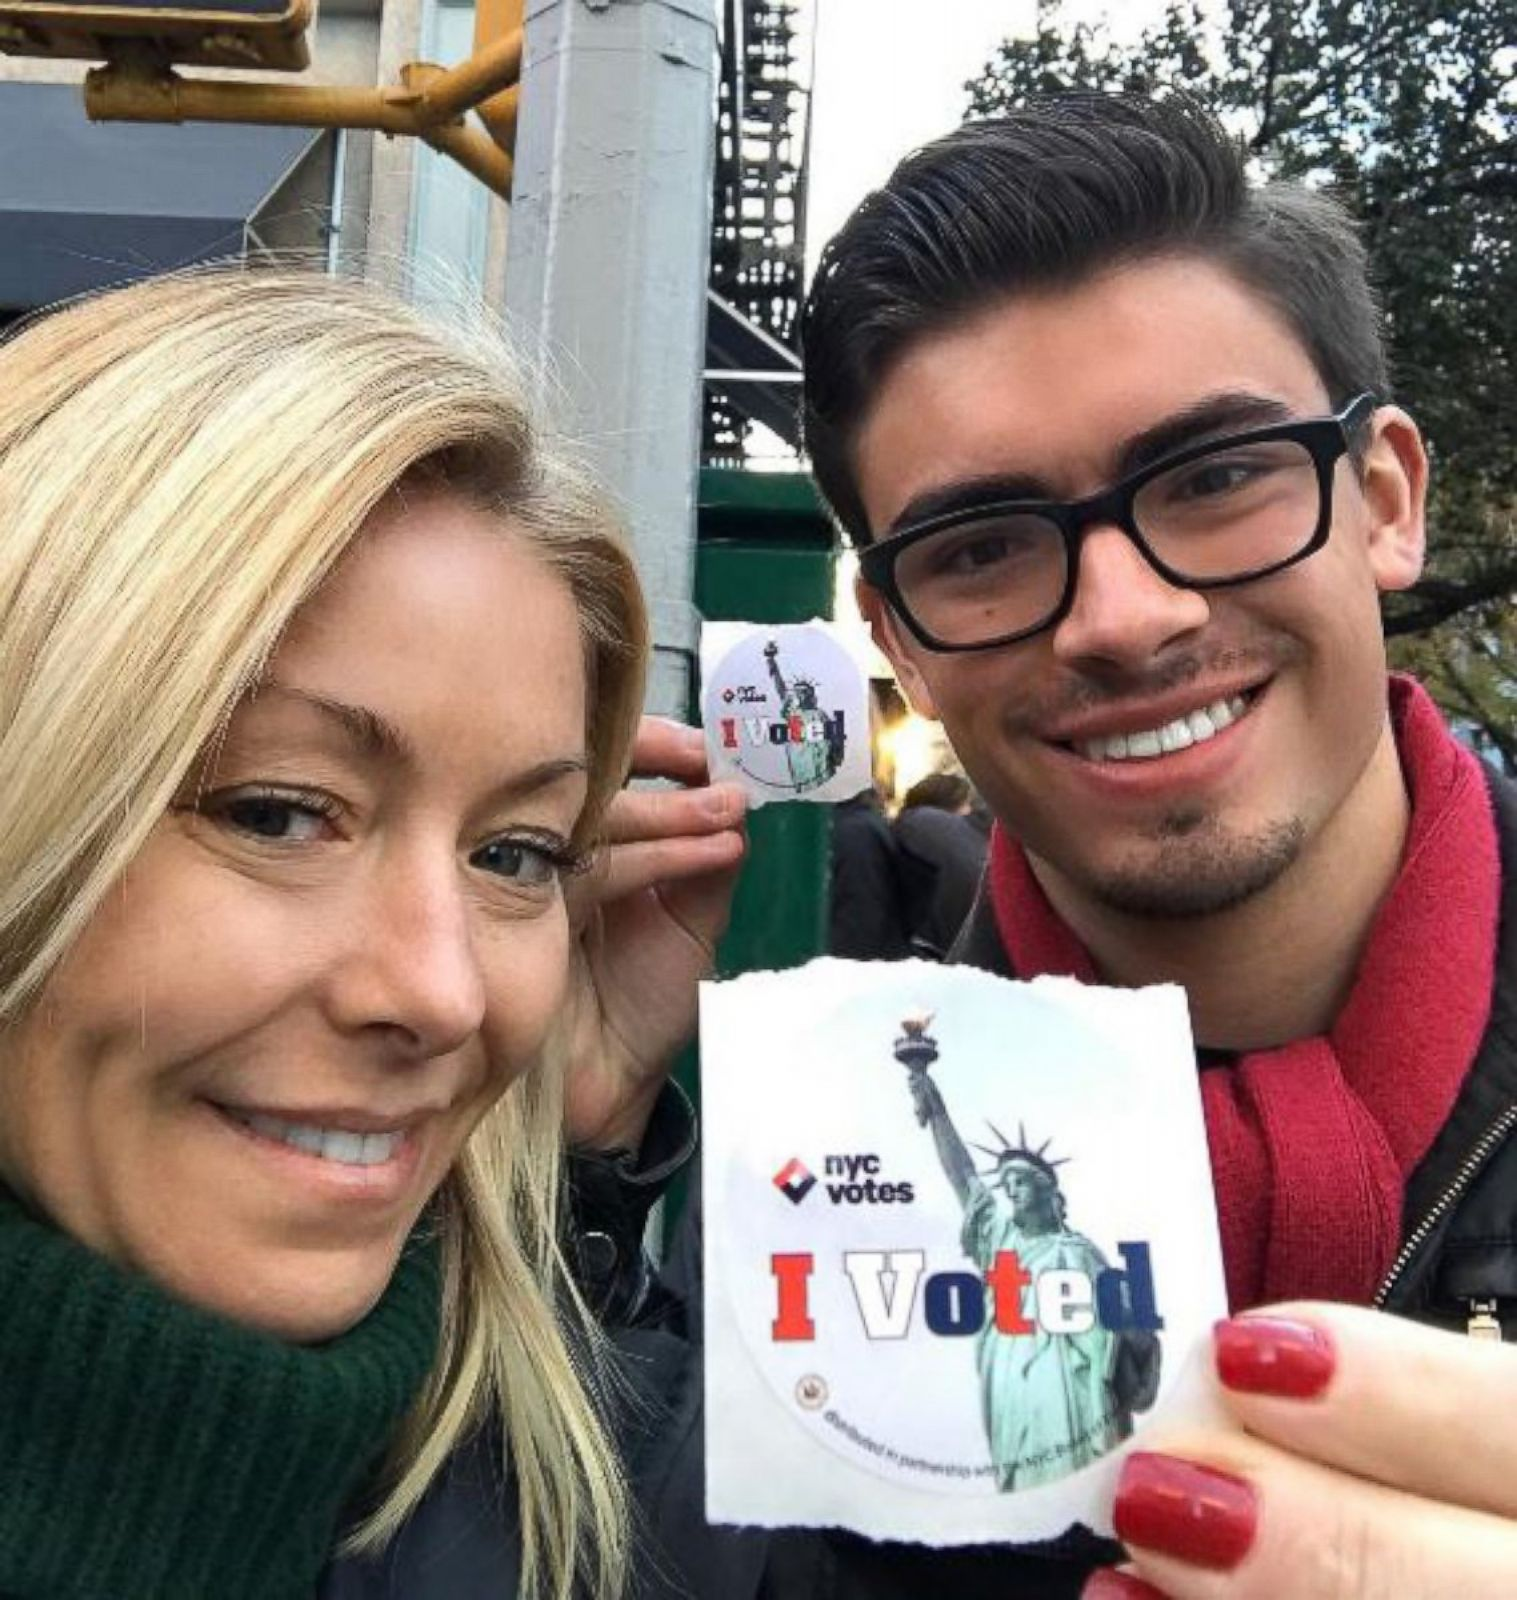 Kelly Ripa Takes Her Son to Vote for the 1st Time Picture | Kelly Ripa's  life in photos - ABC News